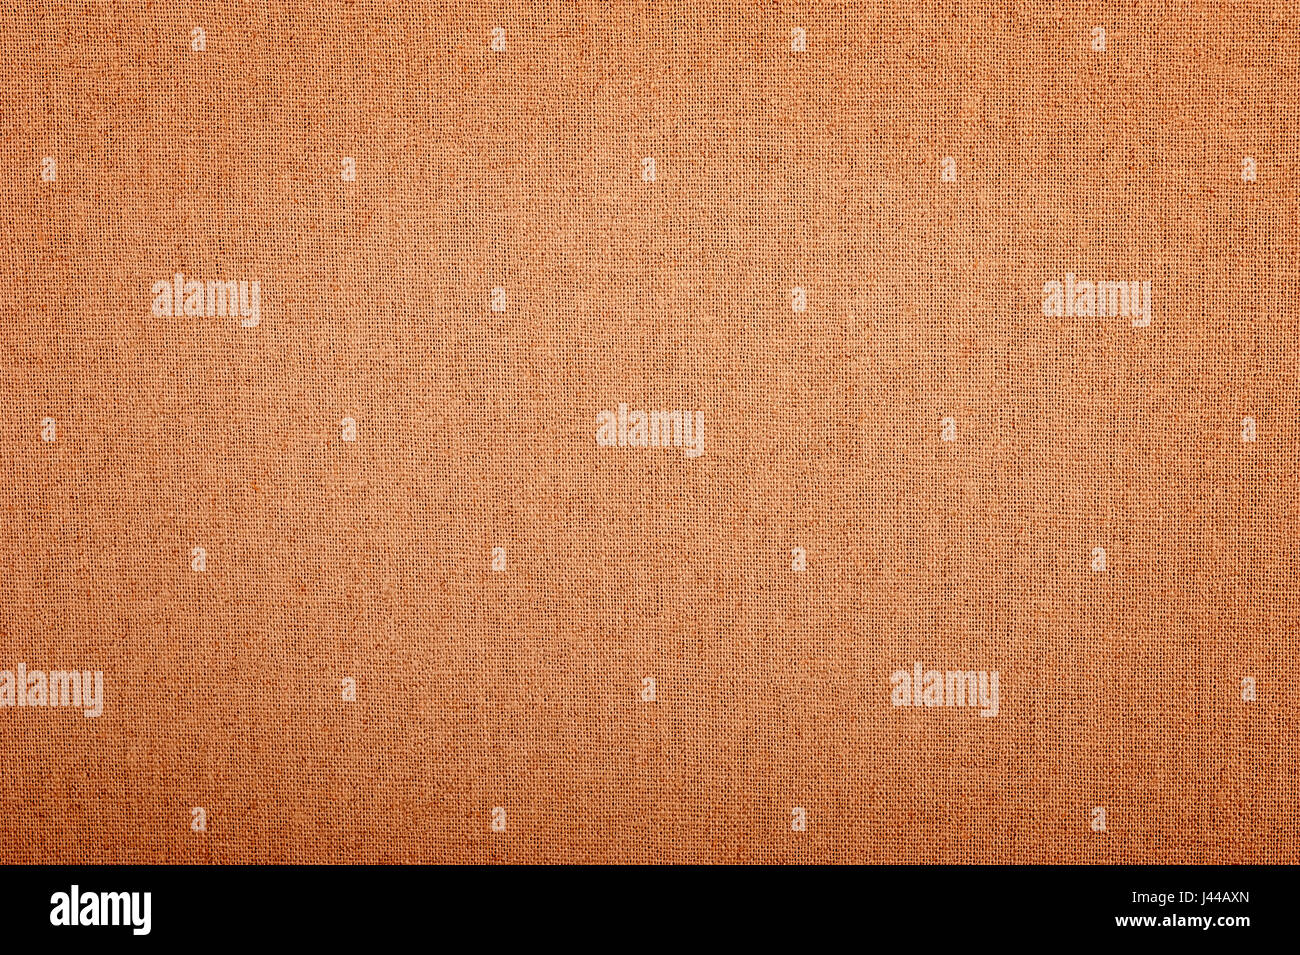 Background and texture of jute canvas - Stock Image